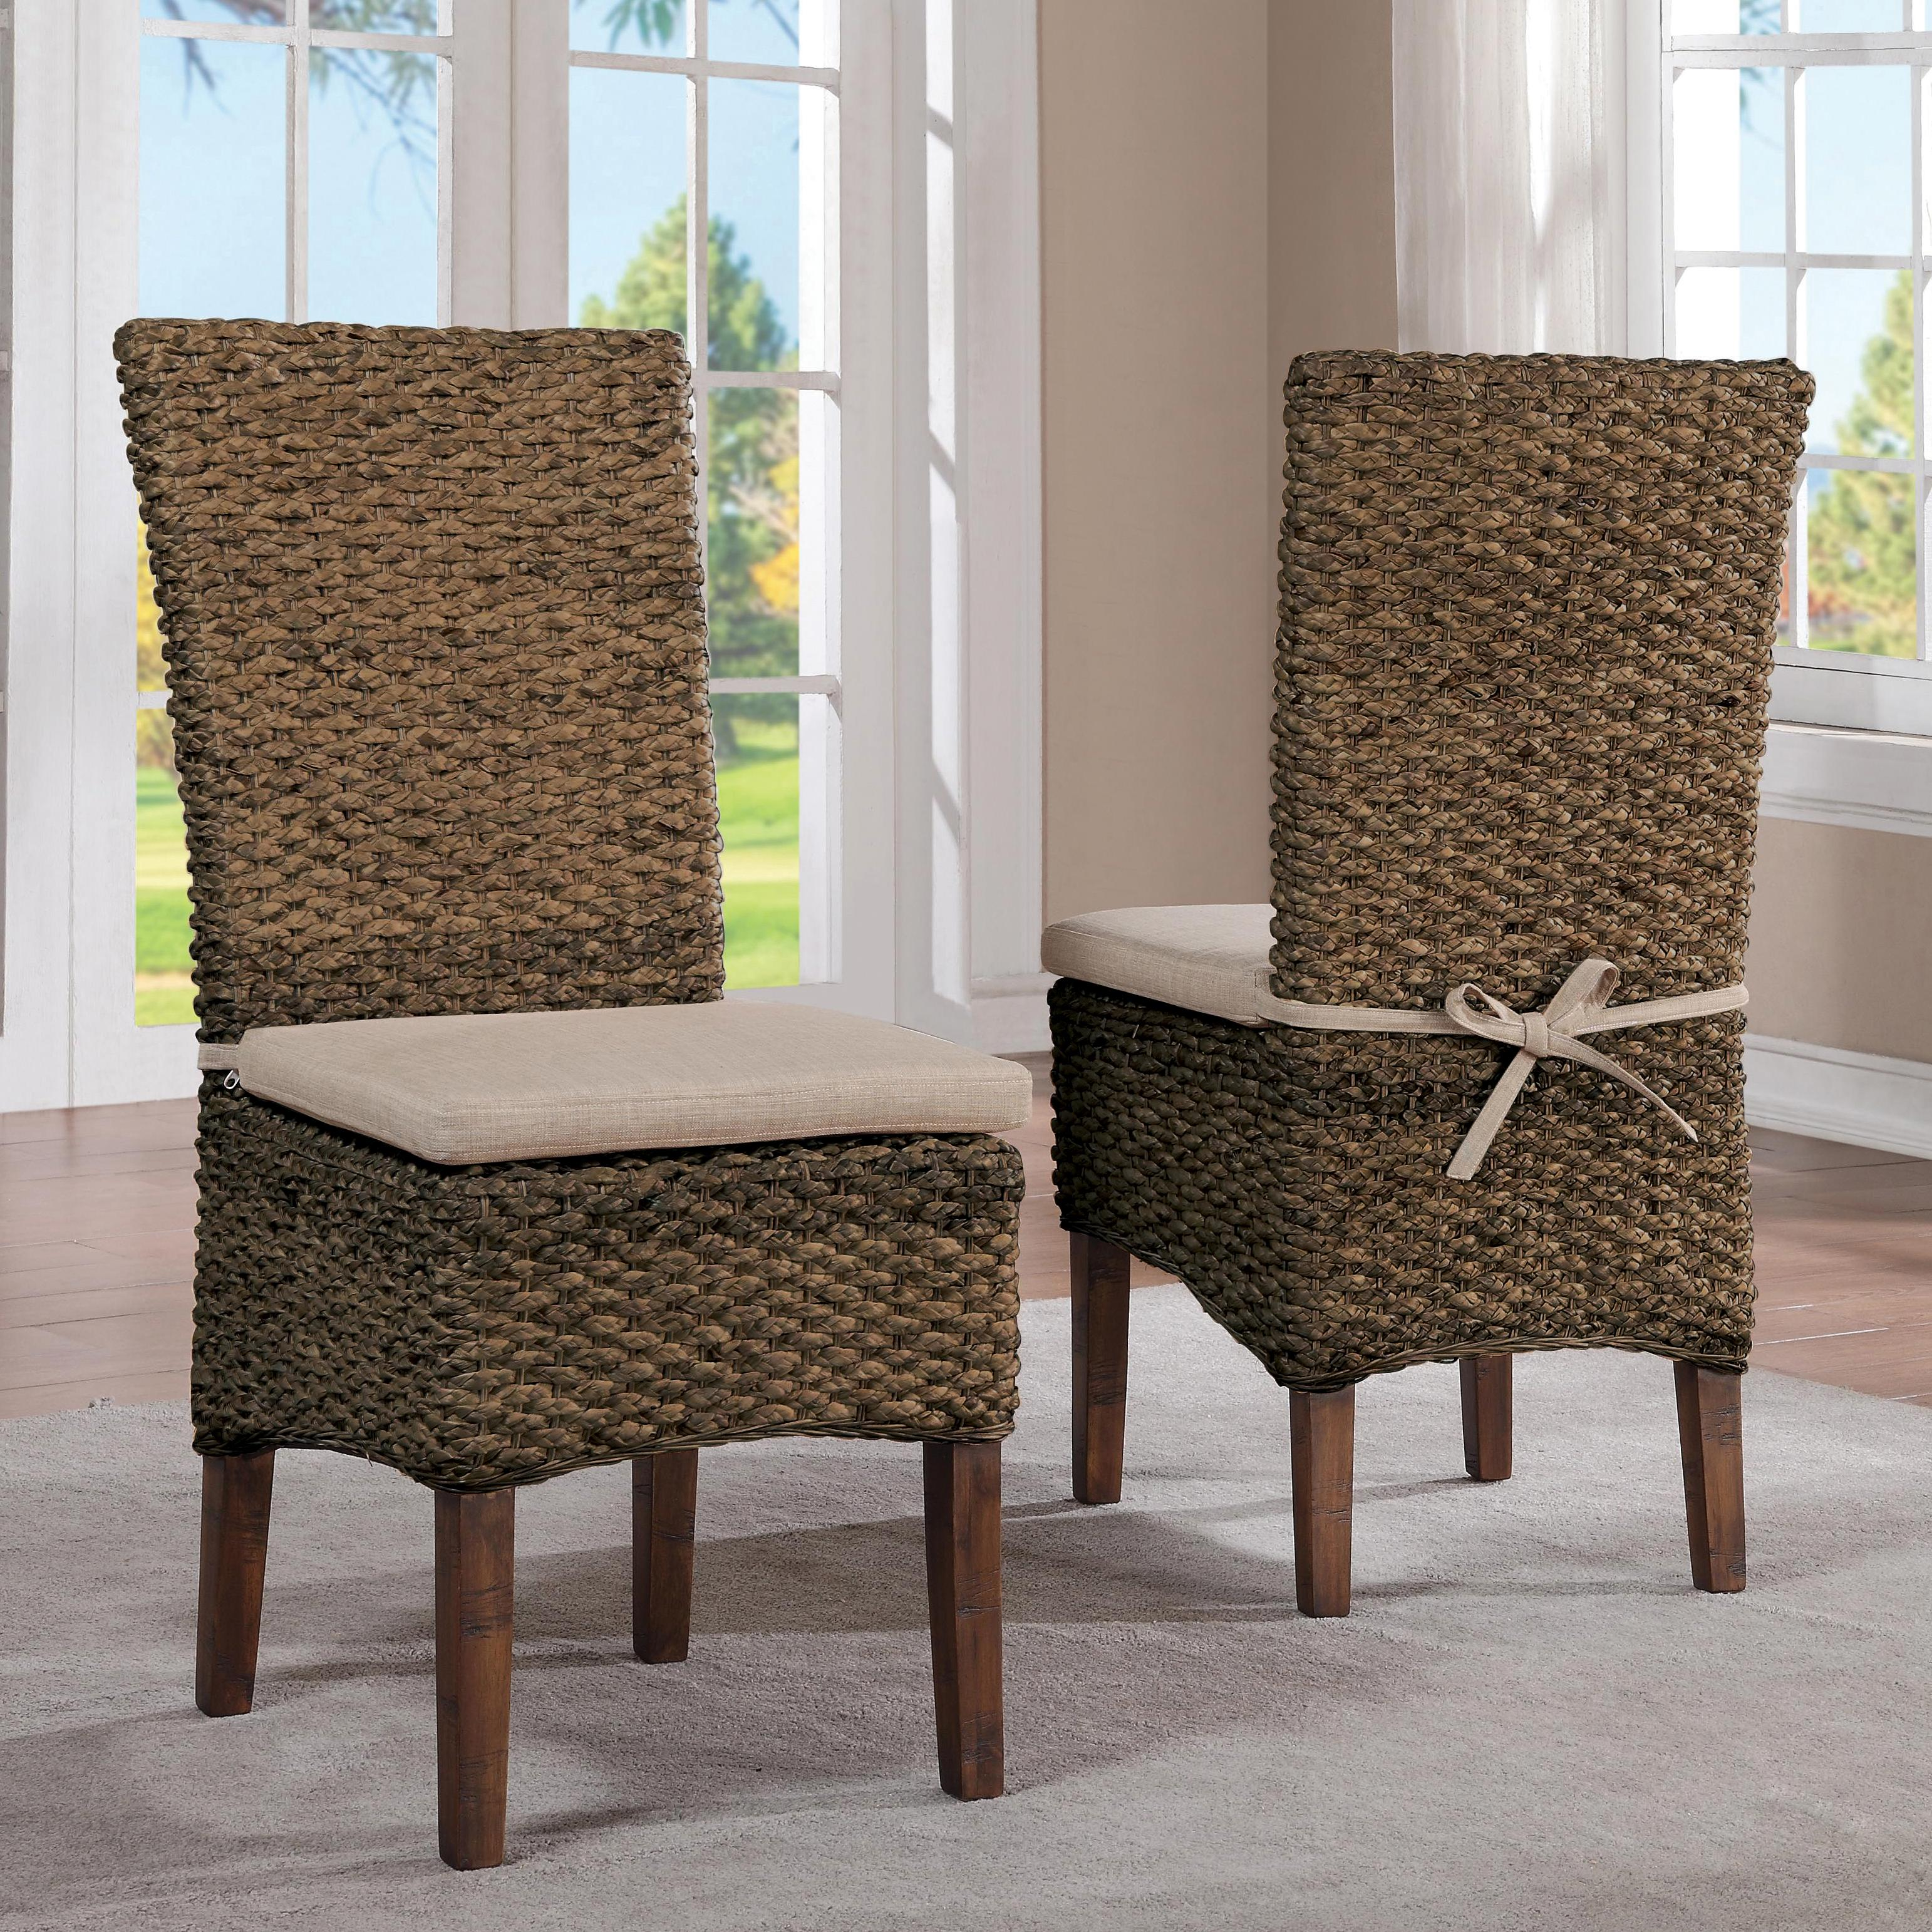 Woven Dining Chairs: Mix-N-Match Chairs Woven Leaf Side Chair By Riverside